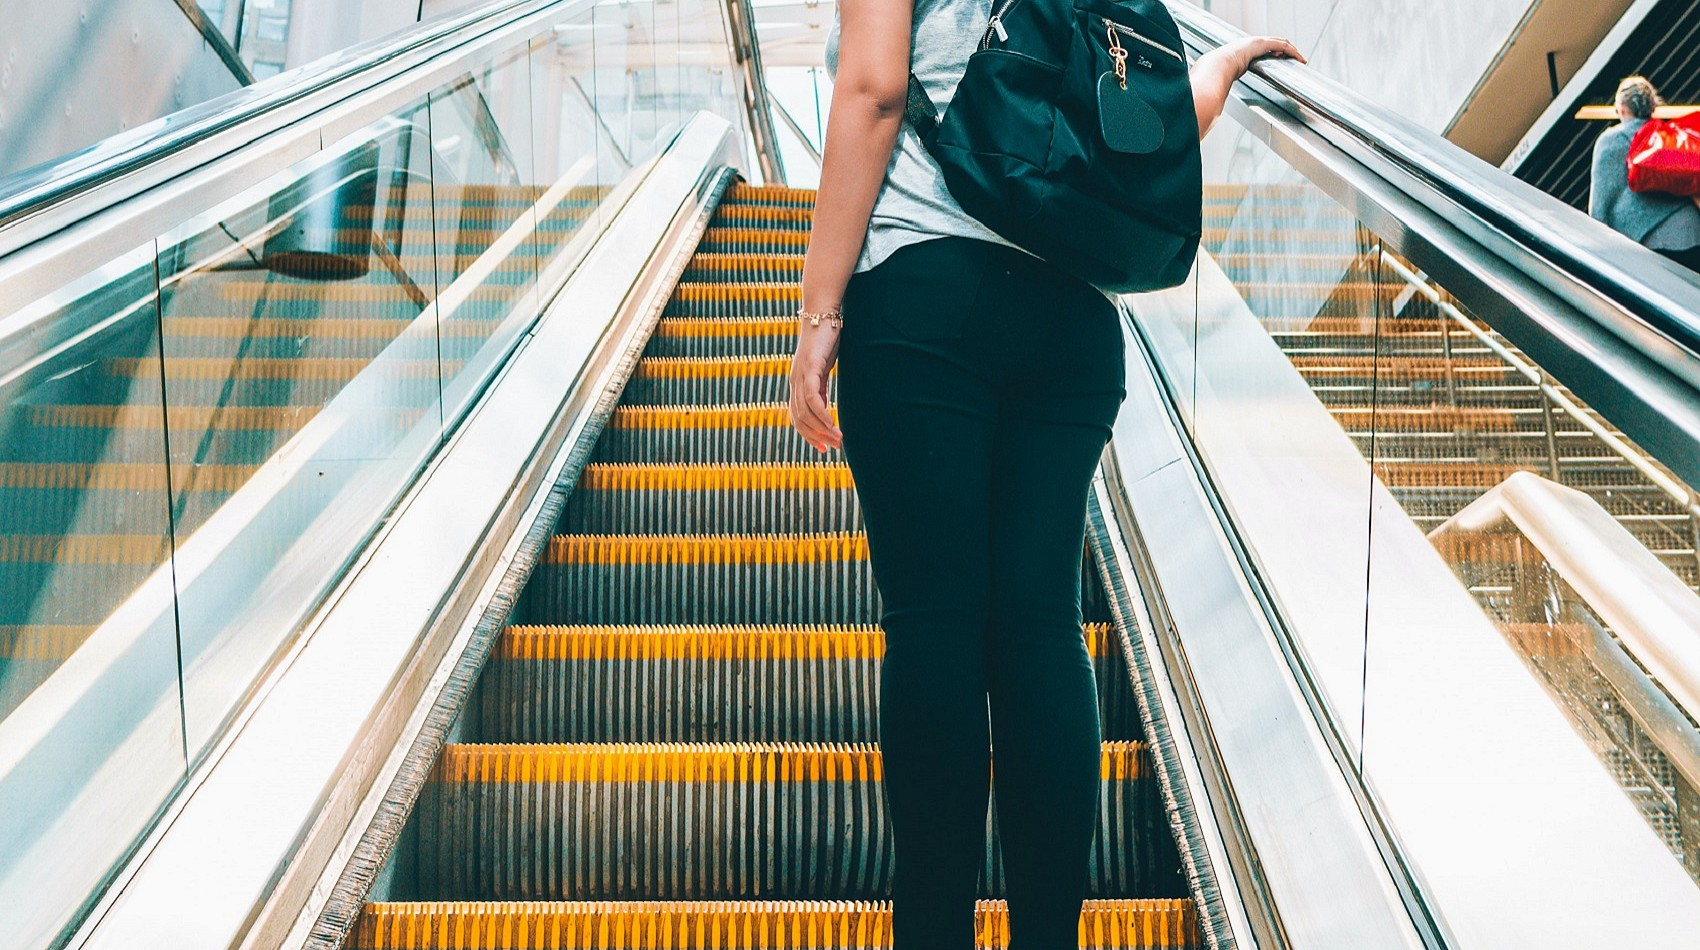 Are you ready to get on the career change escalator?